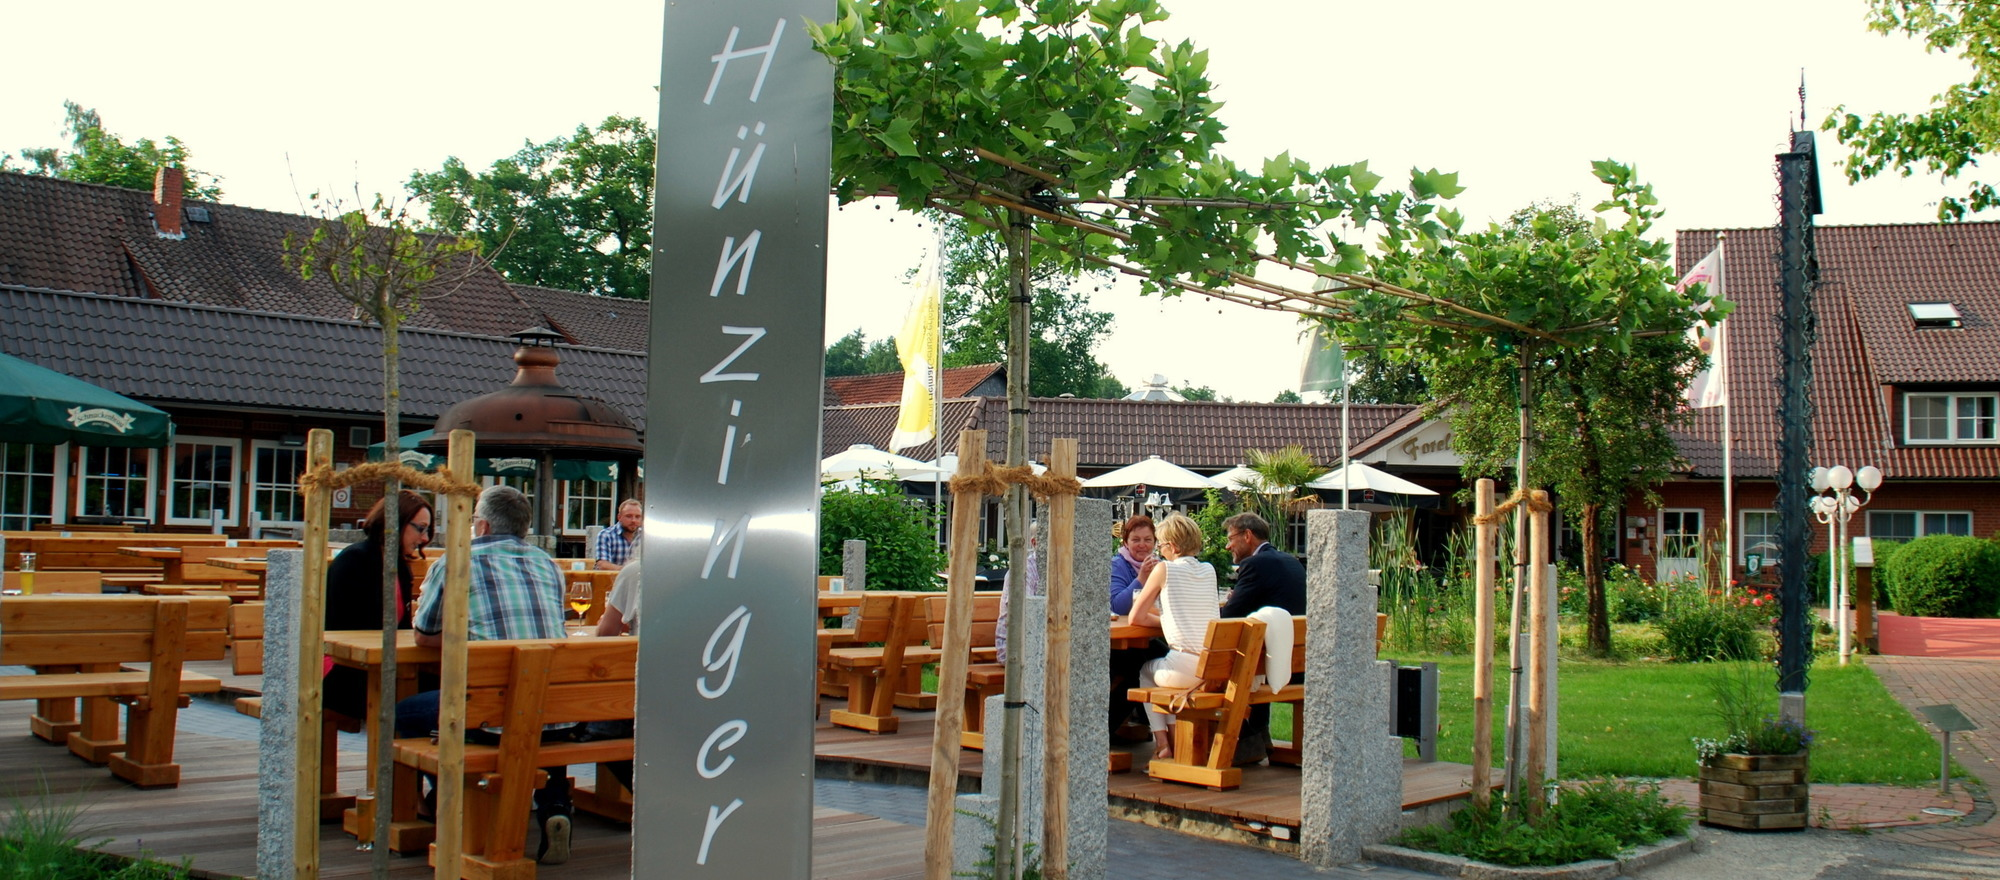 Beer garden in front of the Hünzinger Brauhaus at the Ringhotel Forellenhof in Walsrode, 4-stars Hotel in the Lueneburger Heide